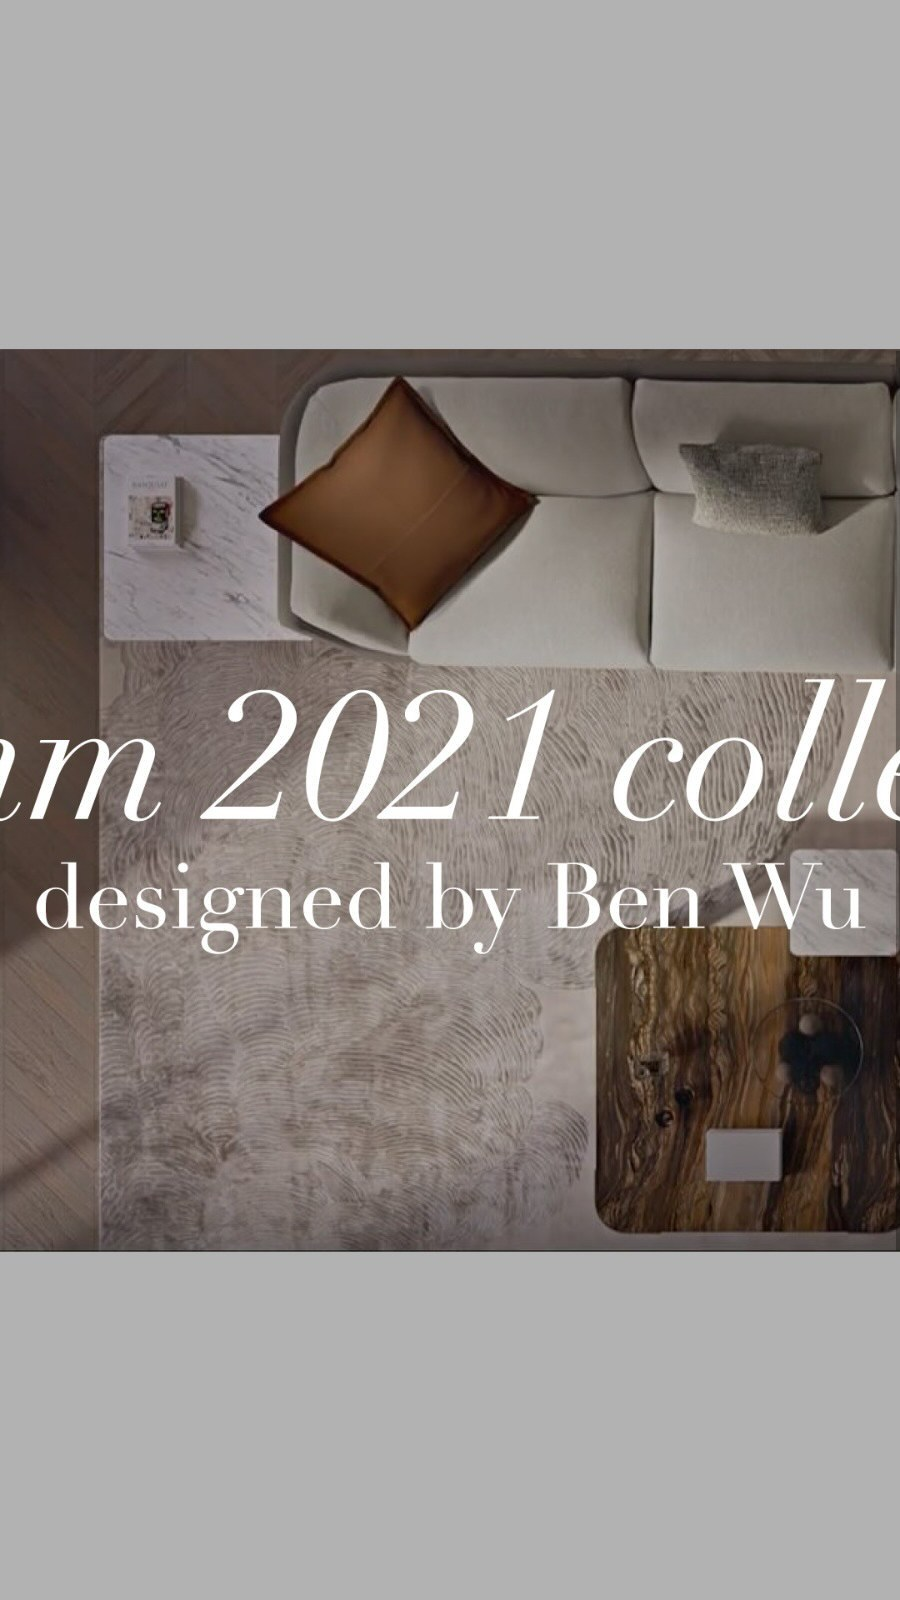 Rhythm 2021 collection will be officiall...